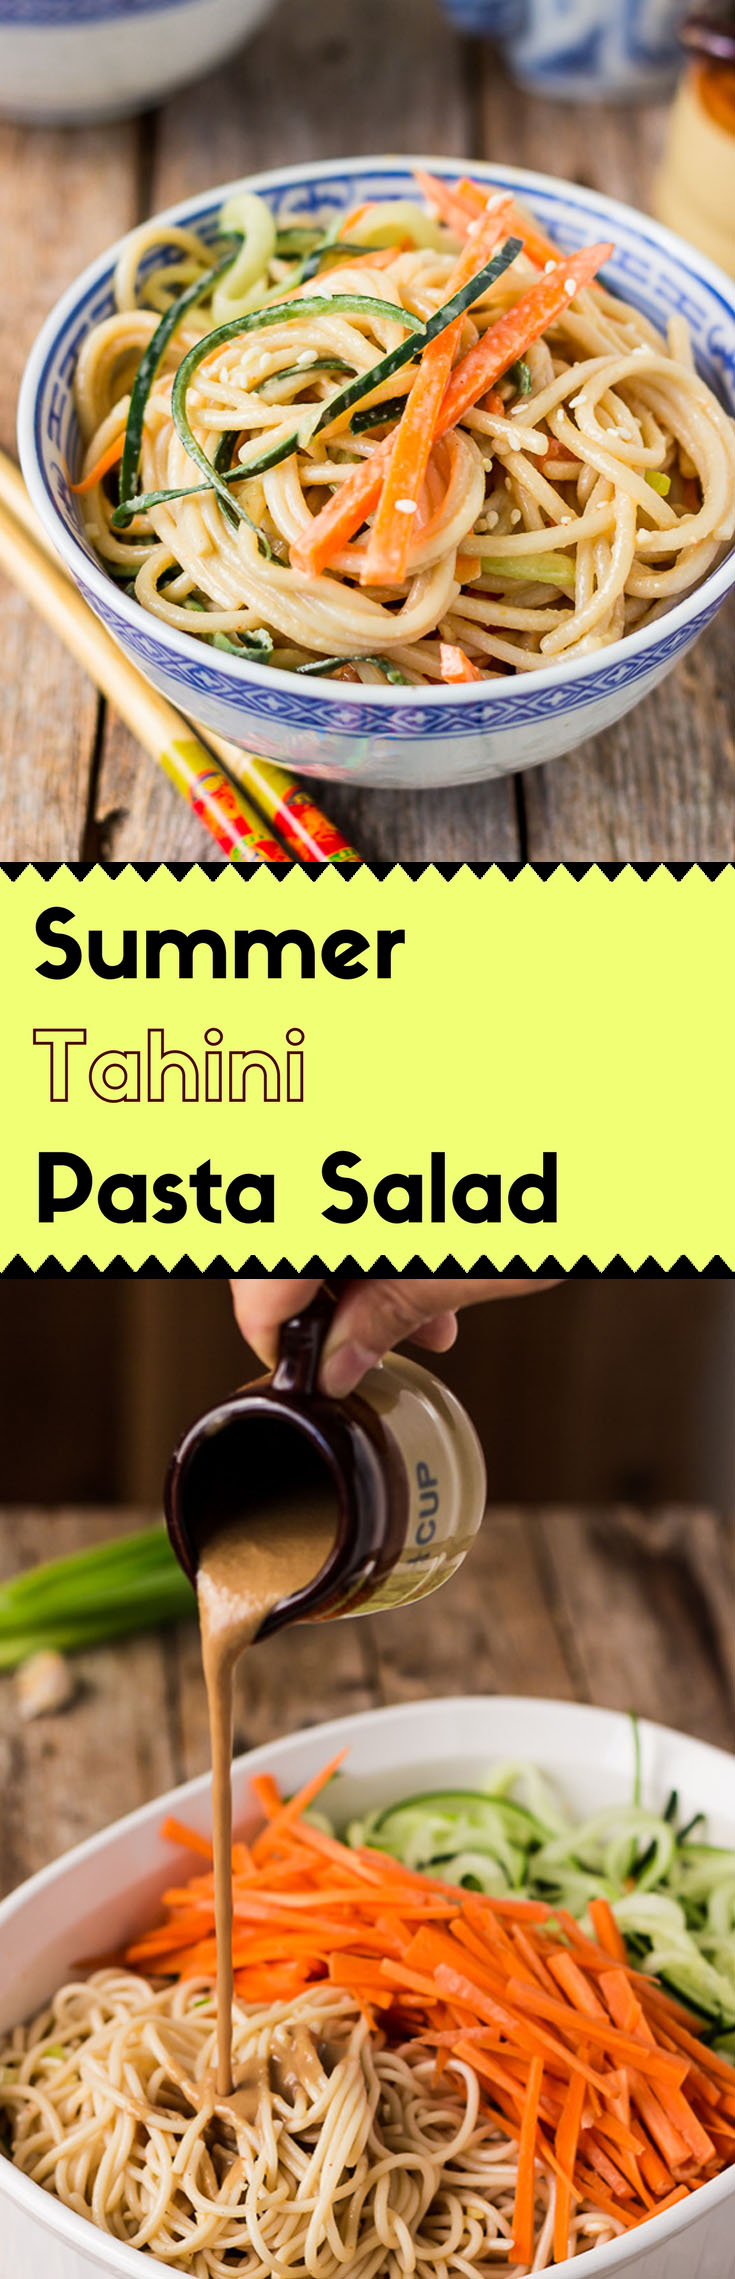 With its rich tahini sauce and refreshing cucumber and carrots, this summer tahini pasta salad will rock your summer. (#vegan #glutenfree #glutenfreepasta #vegansalad #tahinipasta #AsianSalad #AsianPasta #Chineserecipe #potluckrecipe)